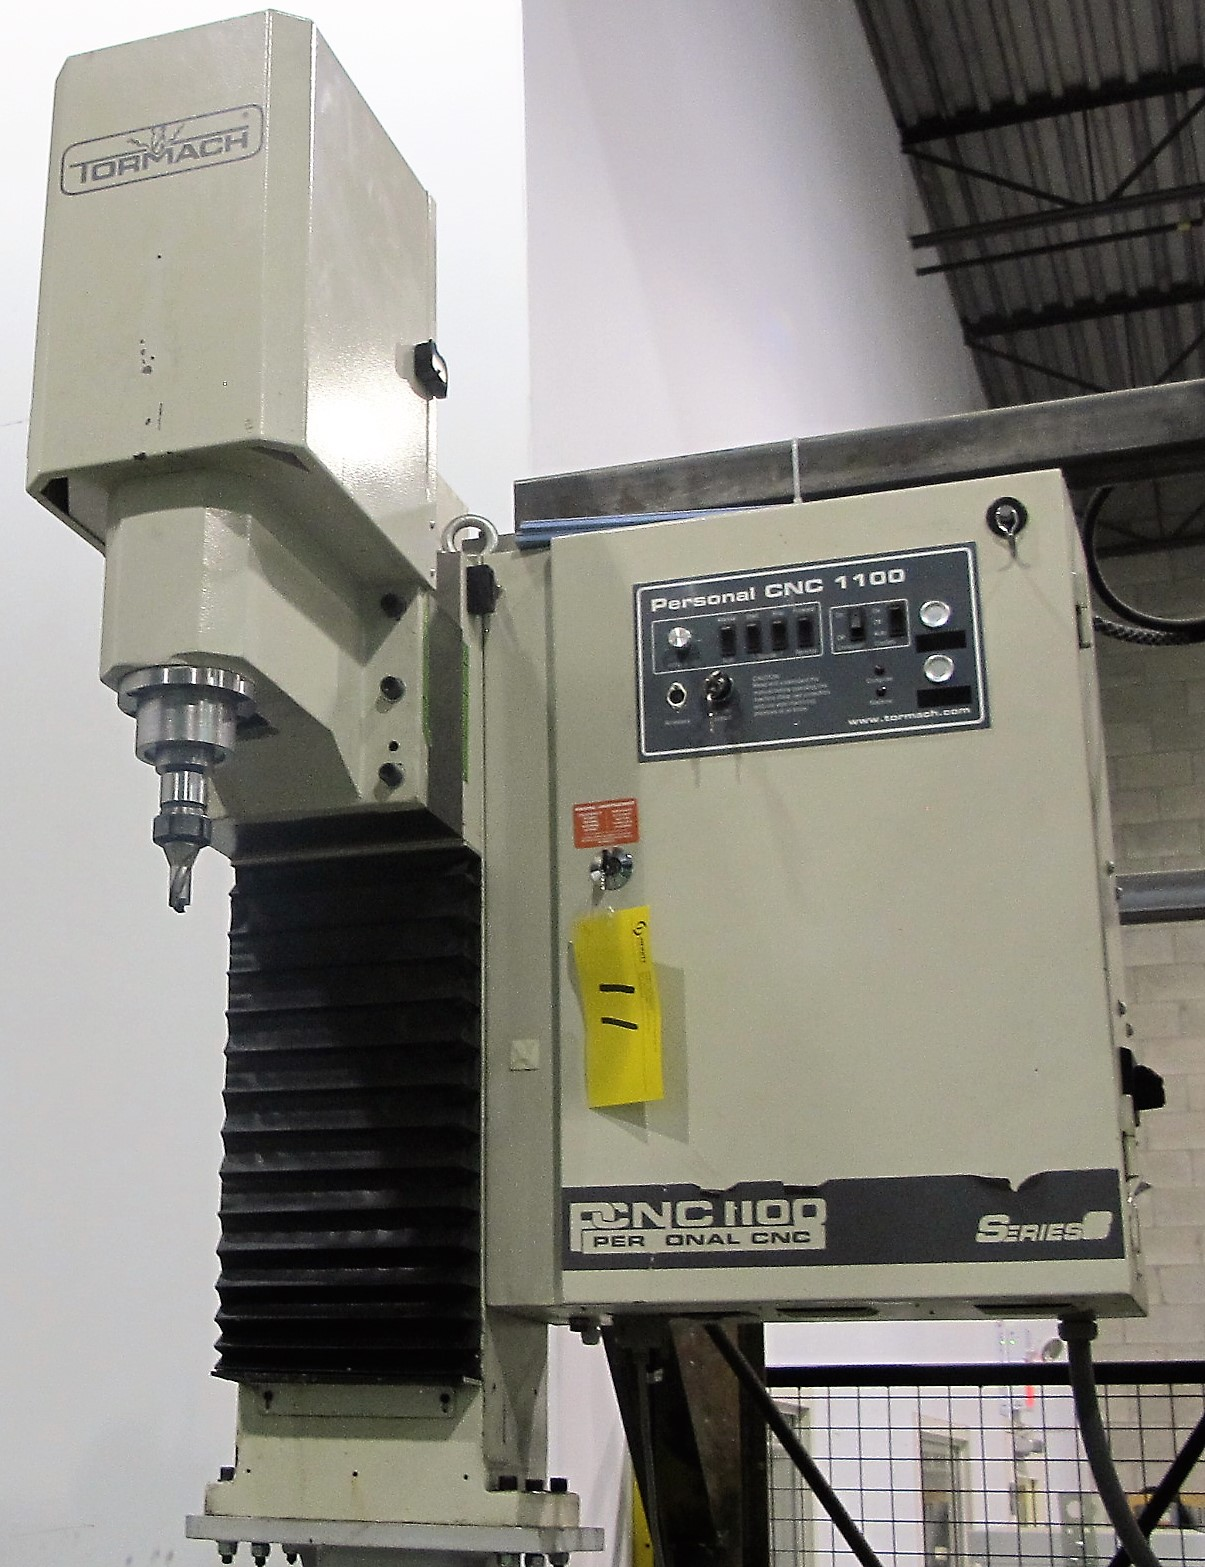 Lot 11 - TORMACH PERSONAL CNC 1100 NC SERIES 3 MILLING MACHINE W/DELL PC COMPUTER/CABINET, S/N 2304 (